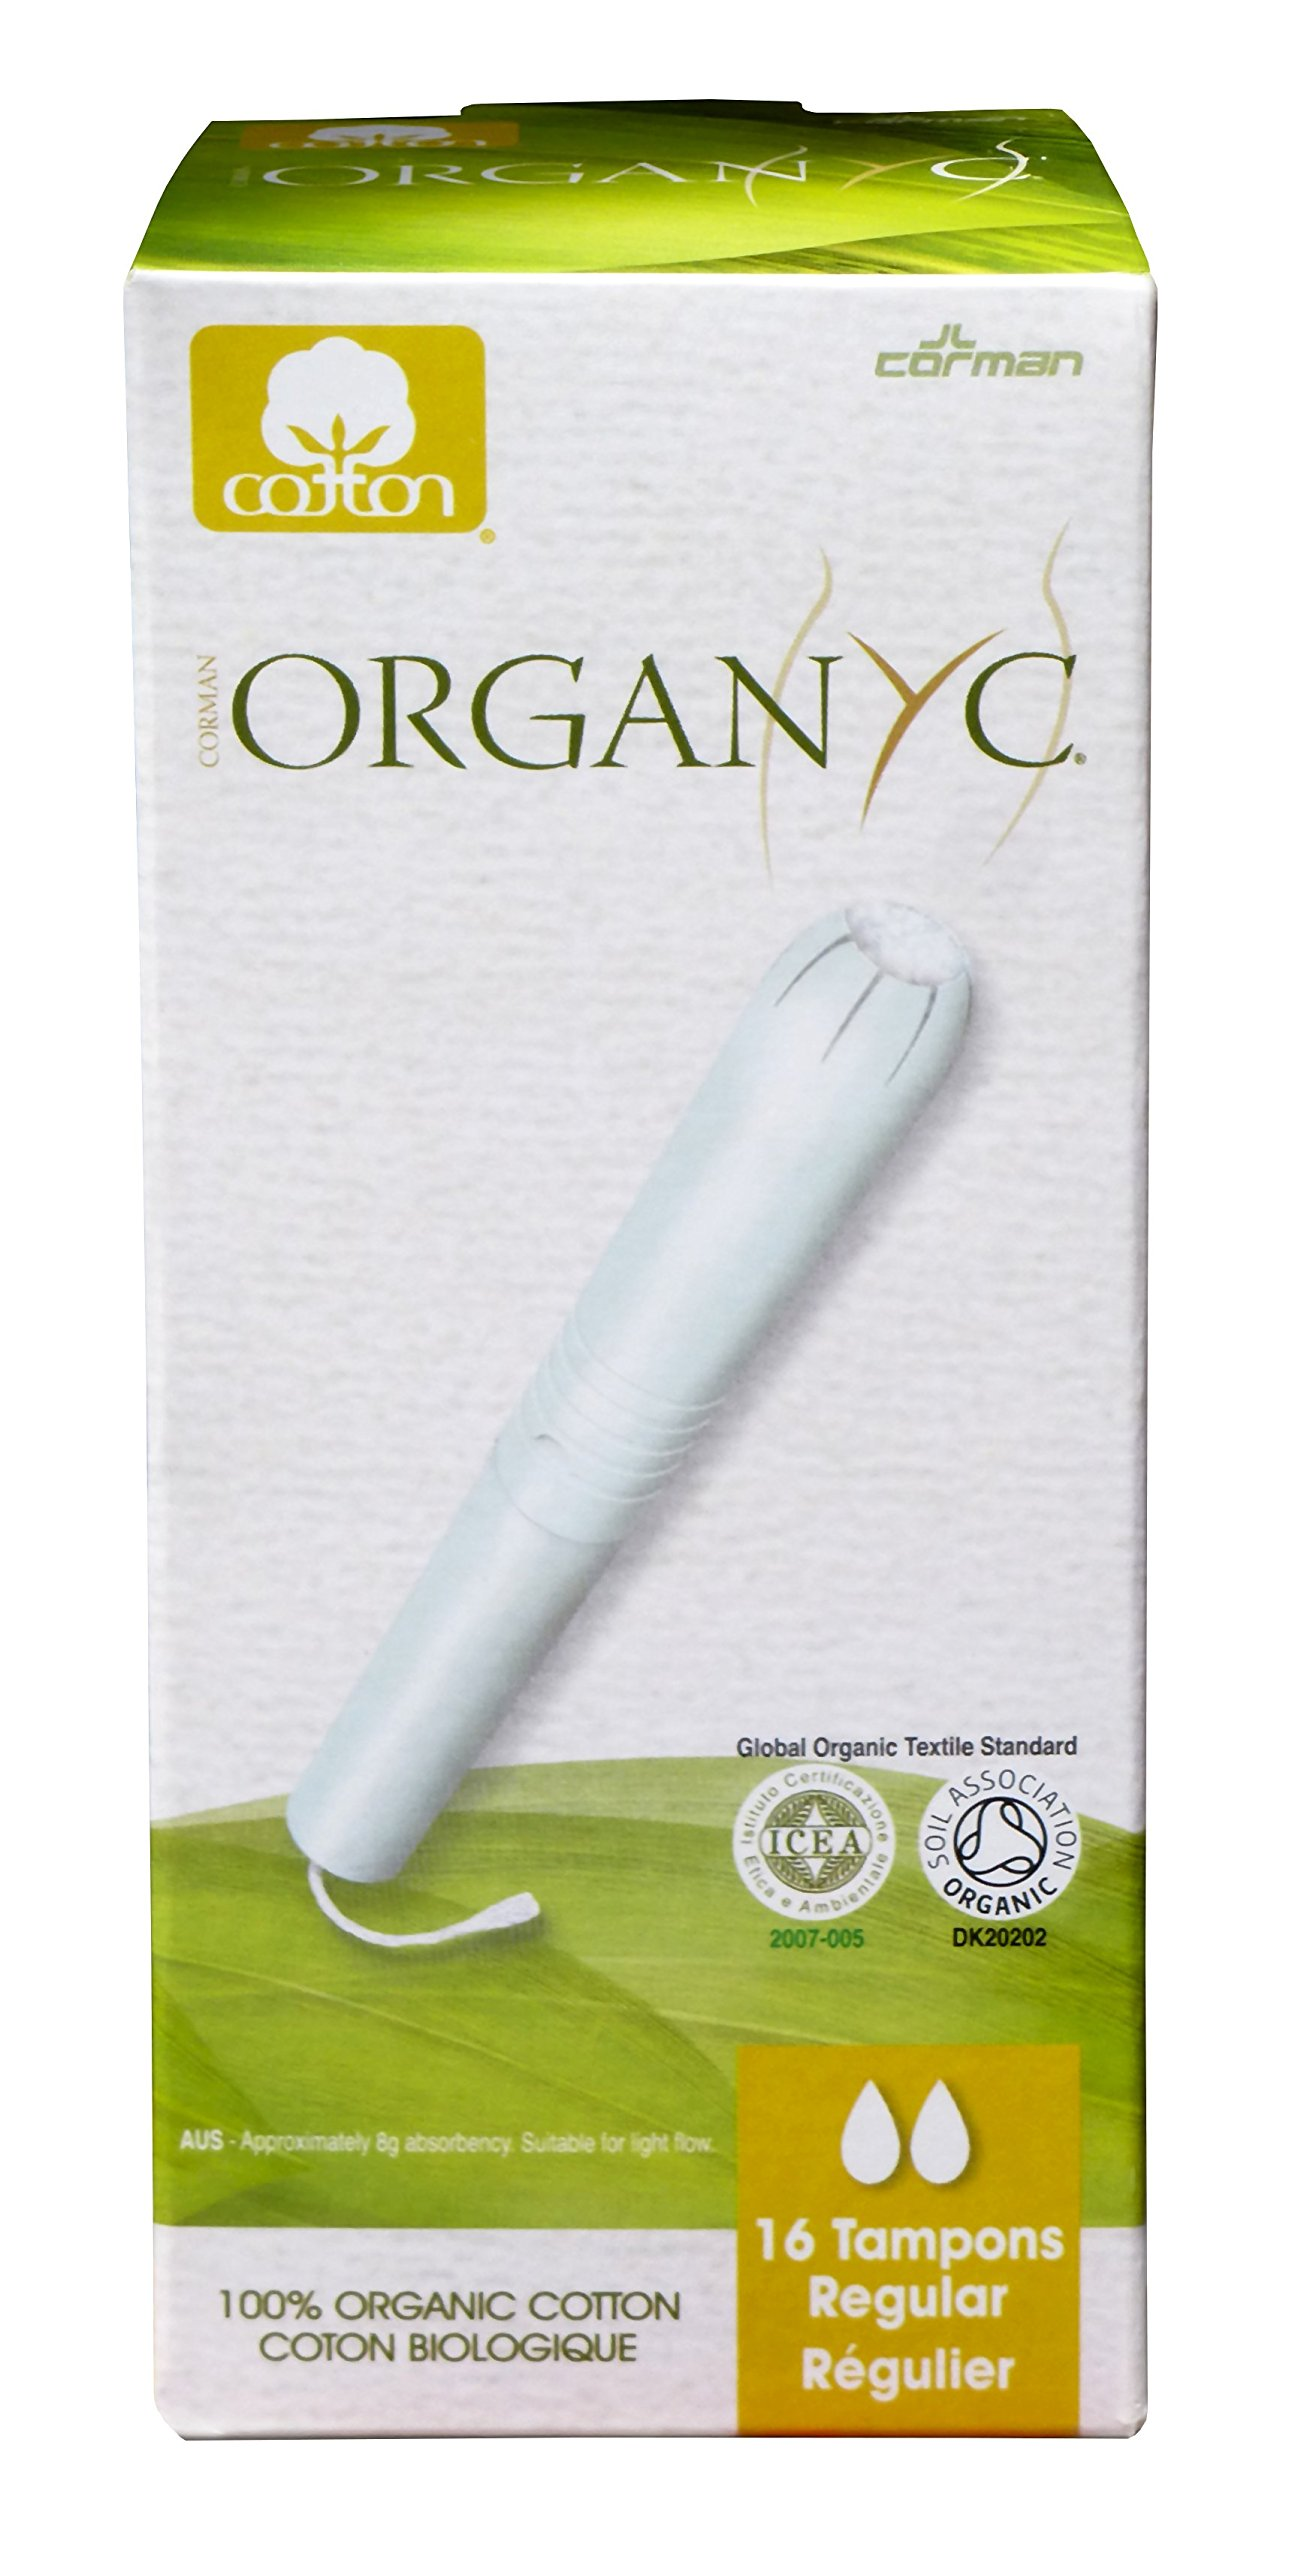 Organyc 100% Organic Cotton Tampons with Applicator for Sensitive Skin, REGULAR, 16 count